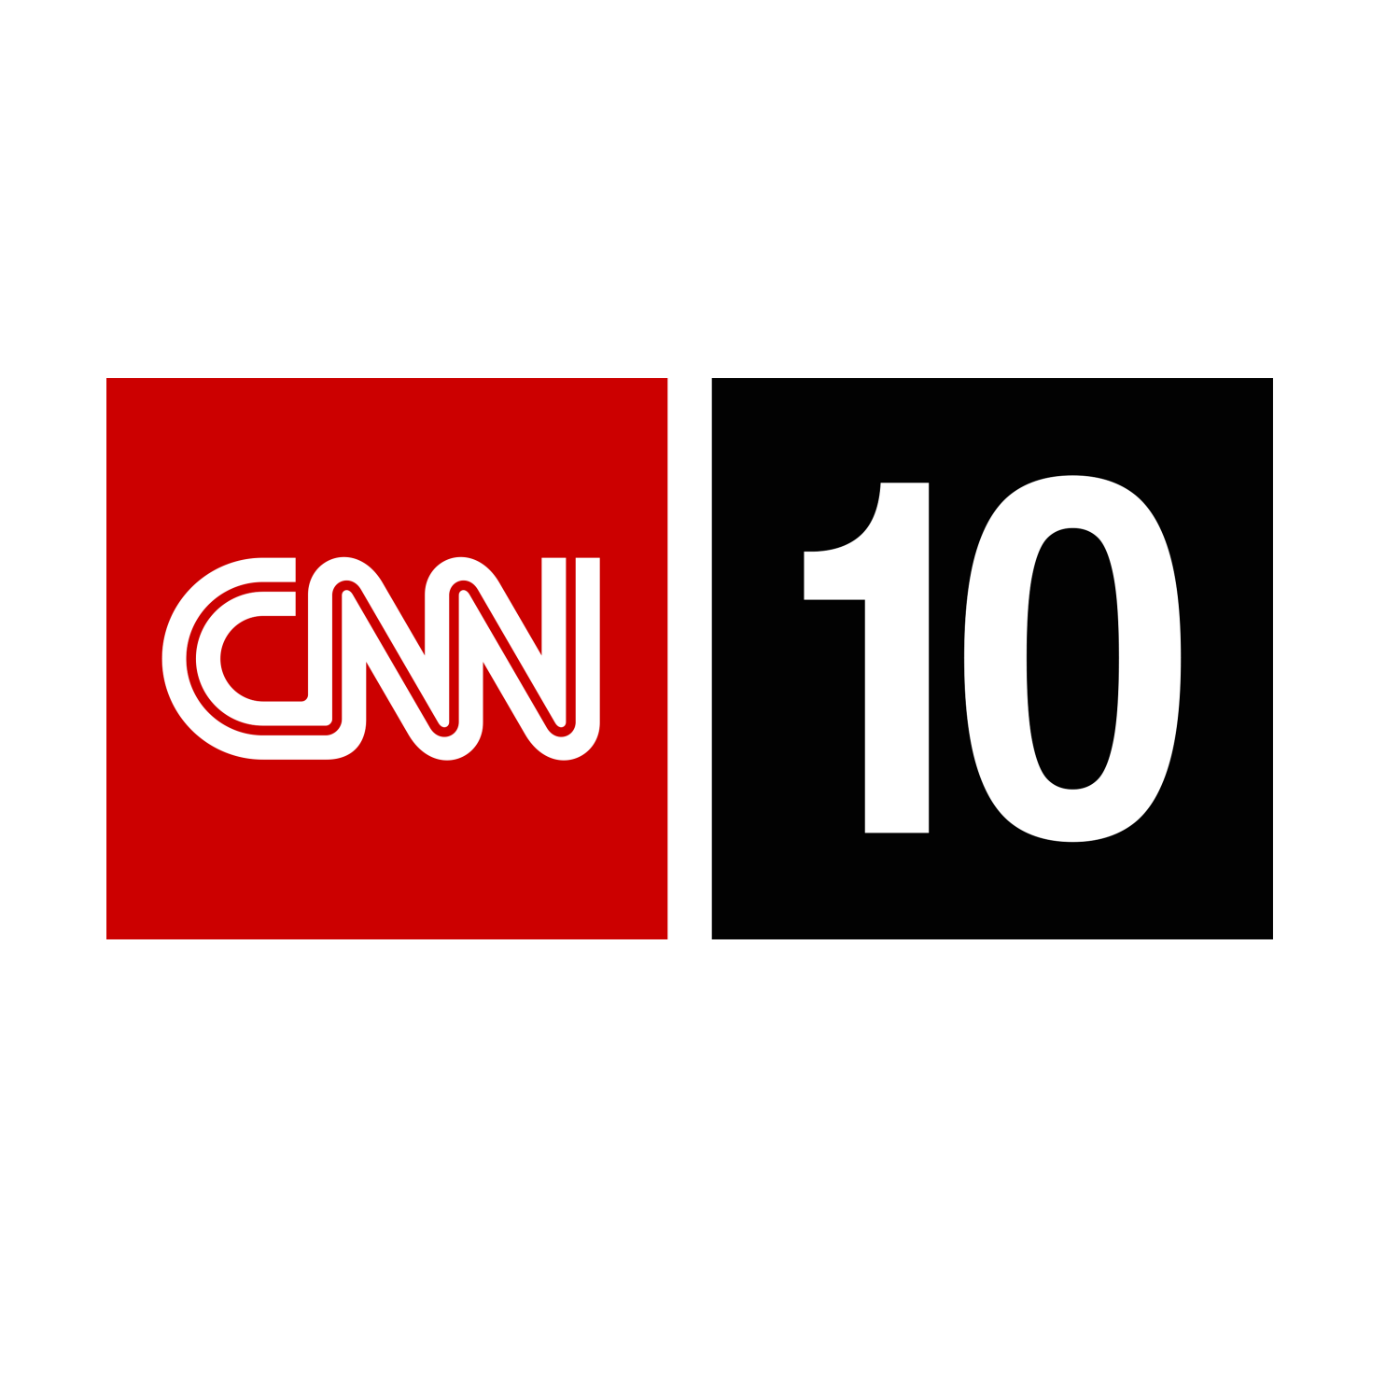 CNN Student News - October 10, 2012